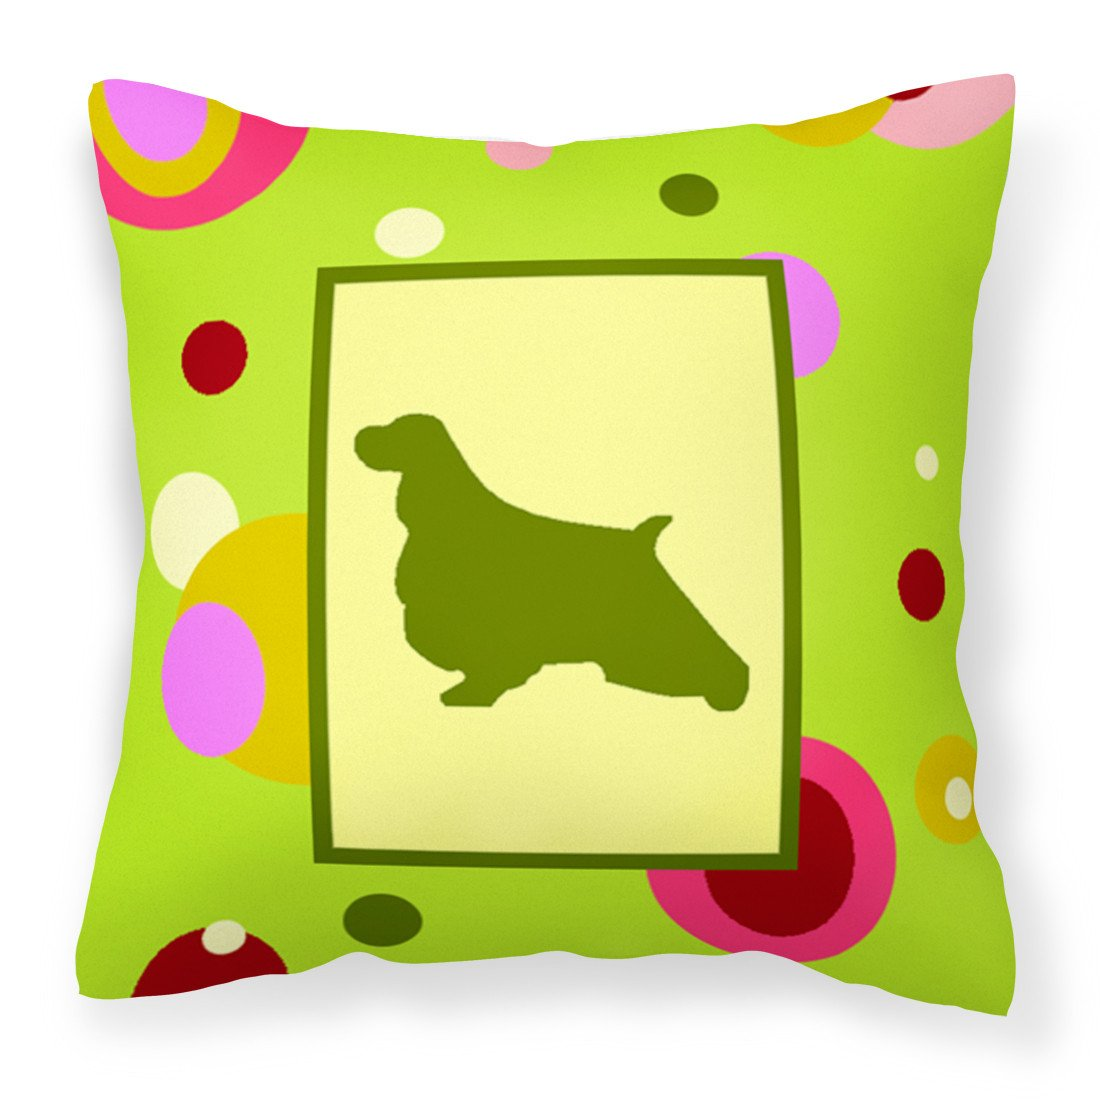 Lime Green Dots English Springer Spaniel Fabric Decorative Pillow CK1029PW1414 by Caroline's Treasures